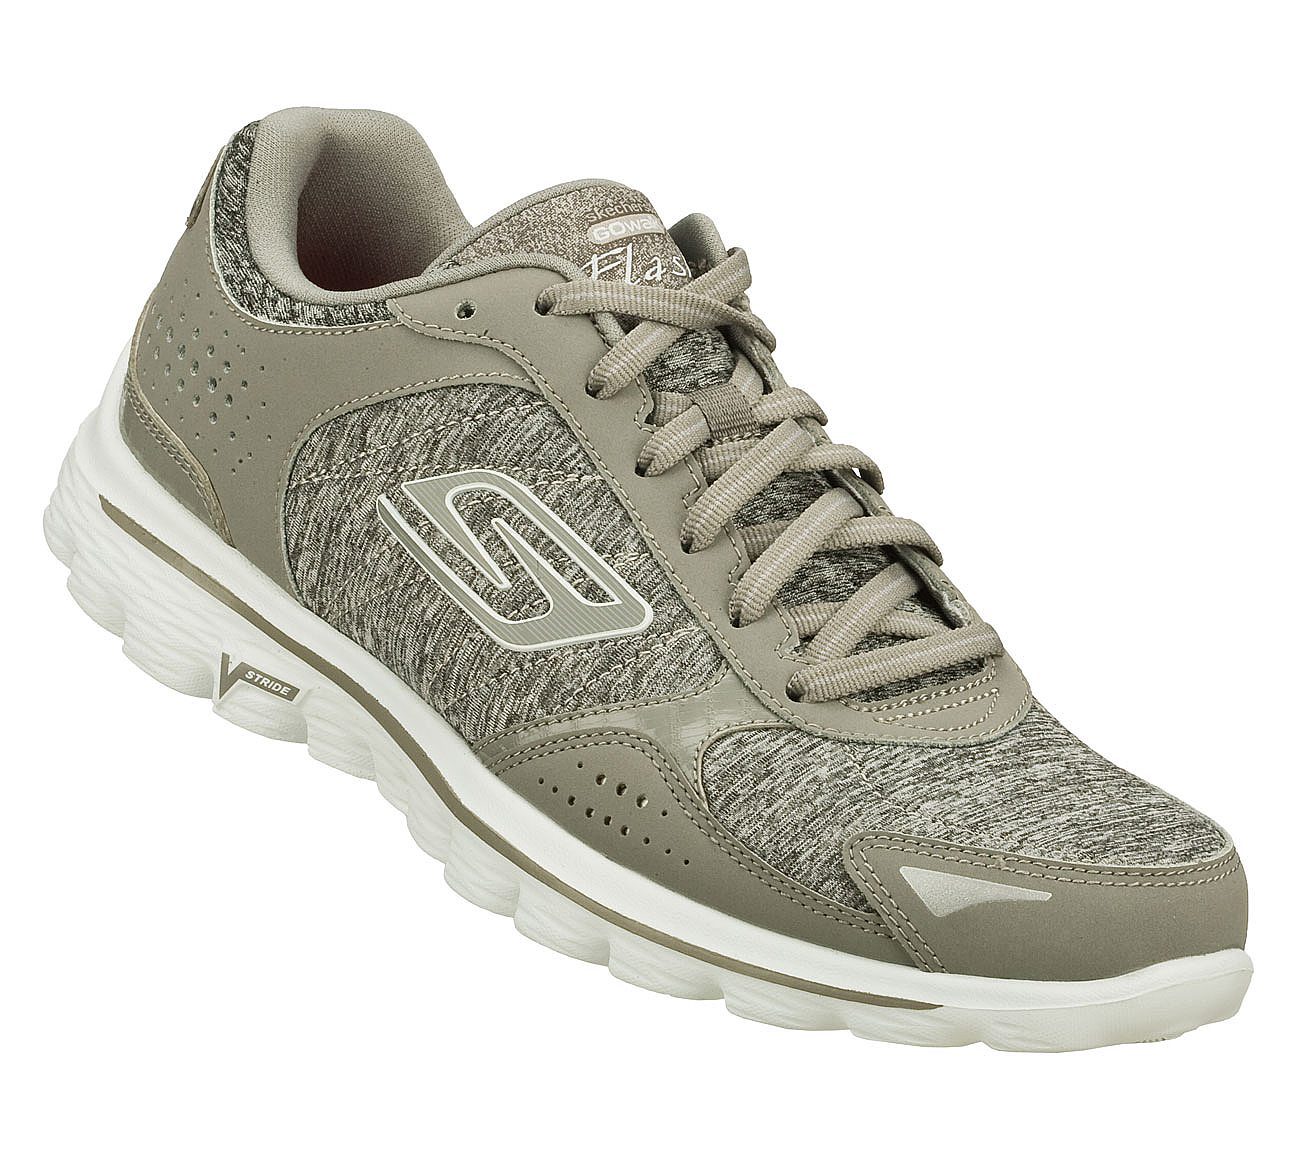 Flash Gym Skechers Performance Shoes